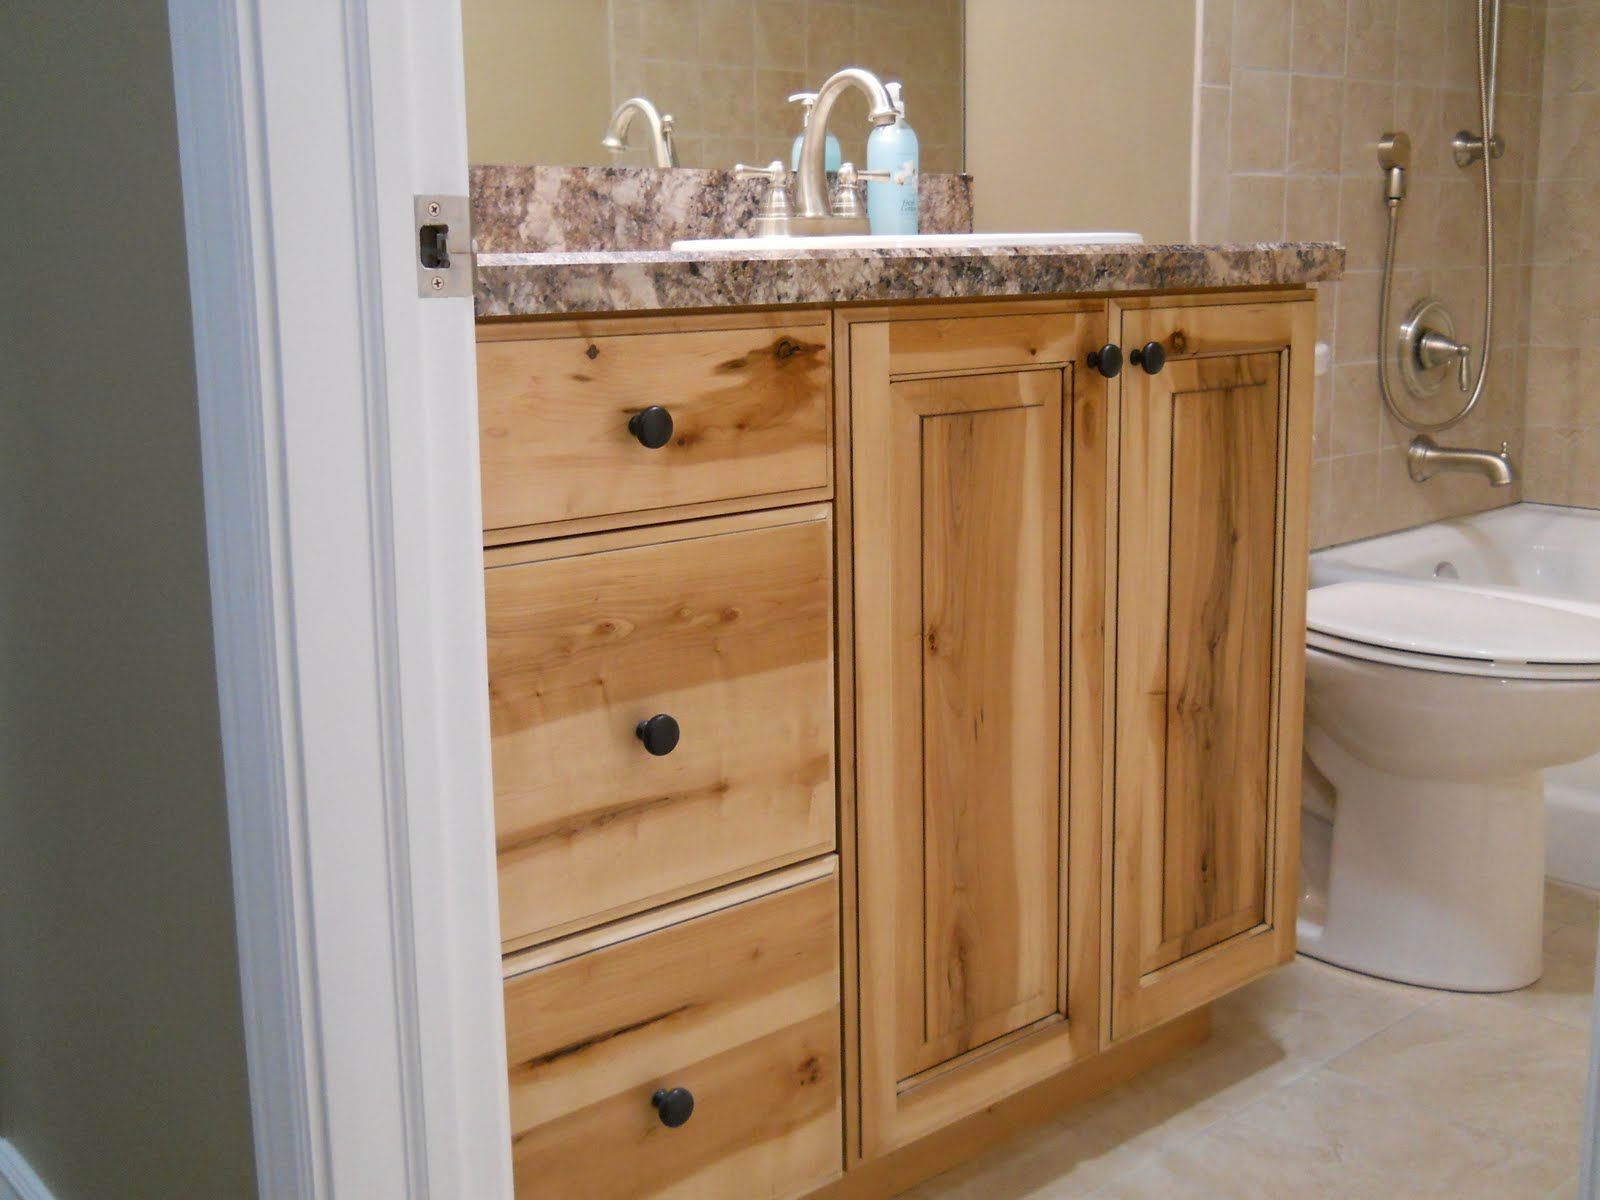 At our site you will find a lot of original rustic bathroom vanities ideas   which you can use to design your custom vanity KNOTTY PINE CABINET Rustic Bathroom Vanities   Newly finished  . Rustic Vanities For Bathrooms. Home Design Ideas